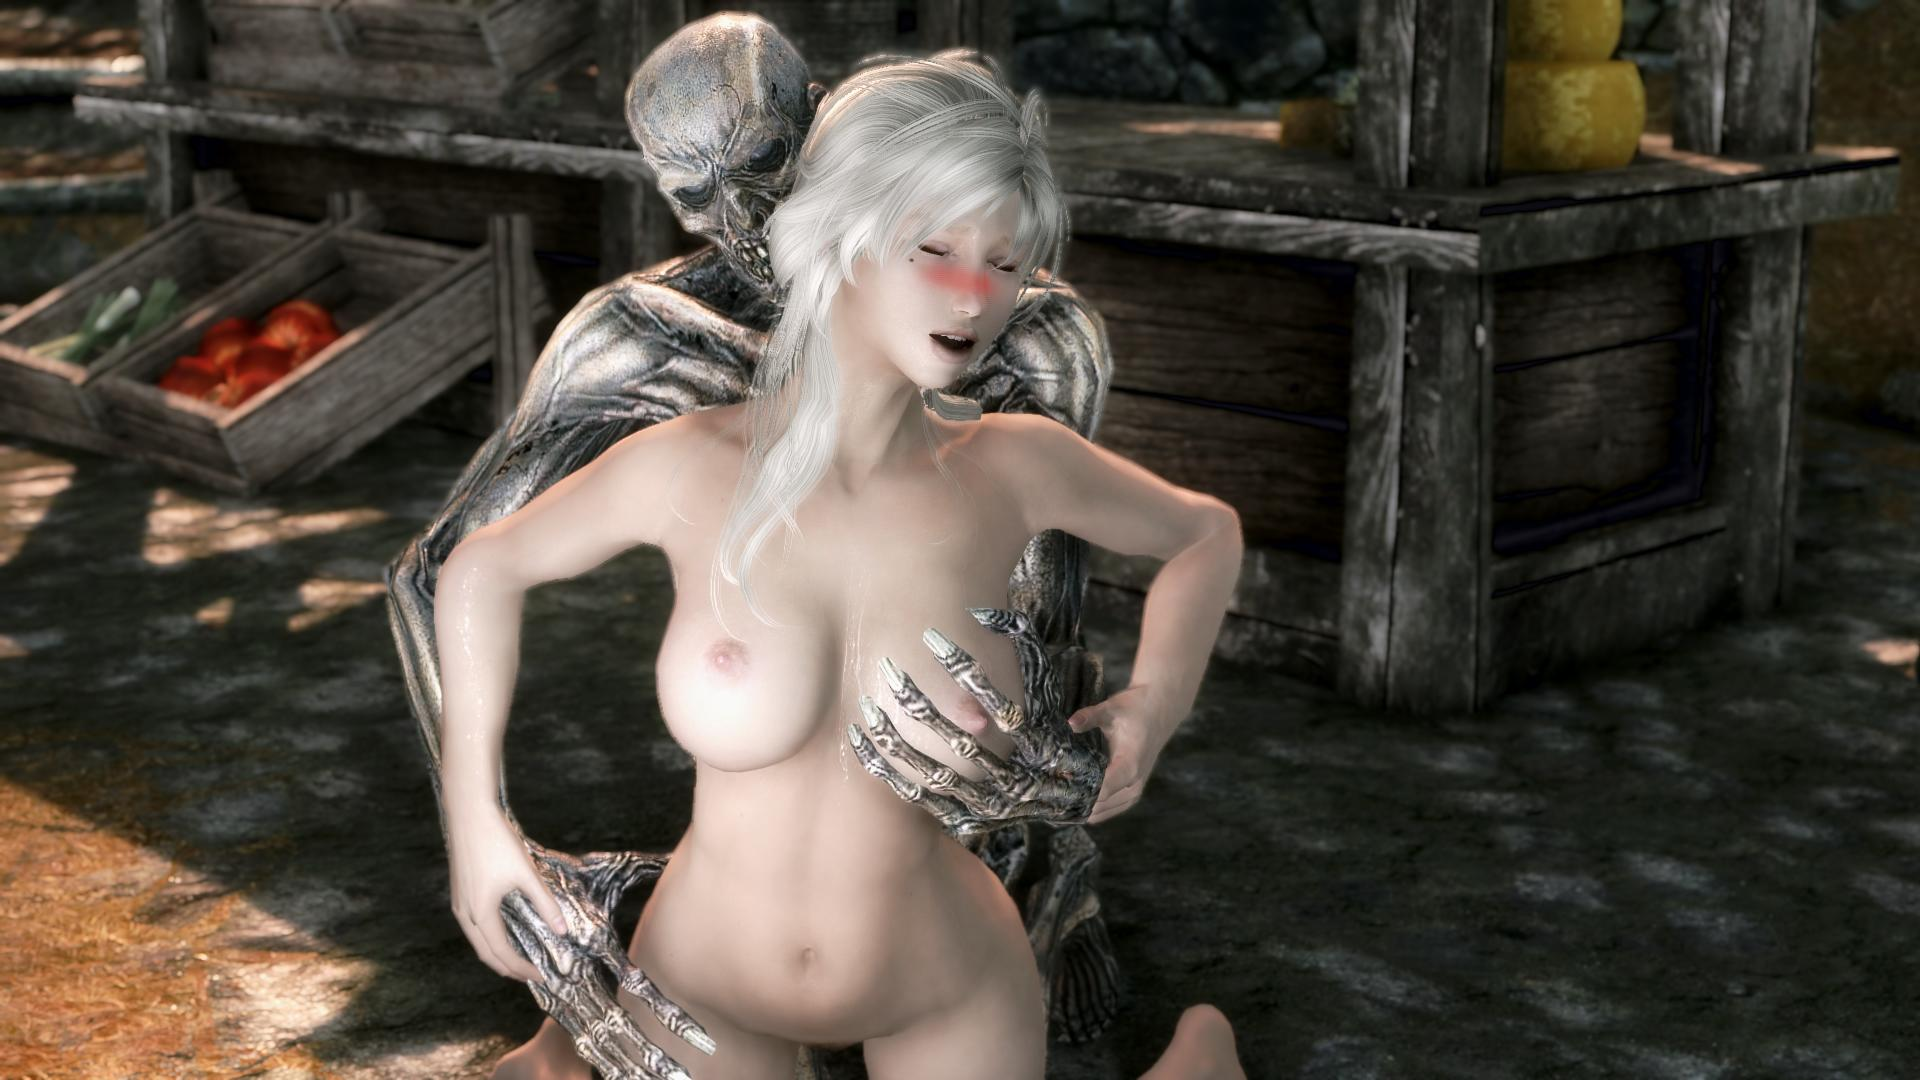 nude-games-girls-hot-sexay